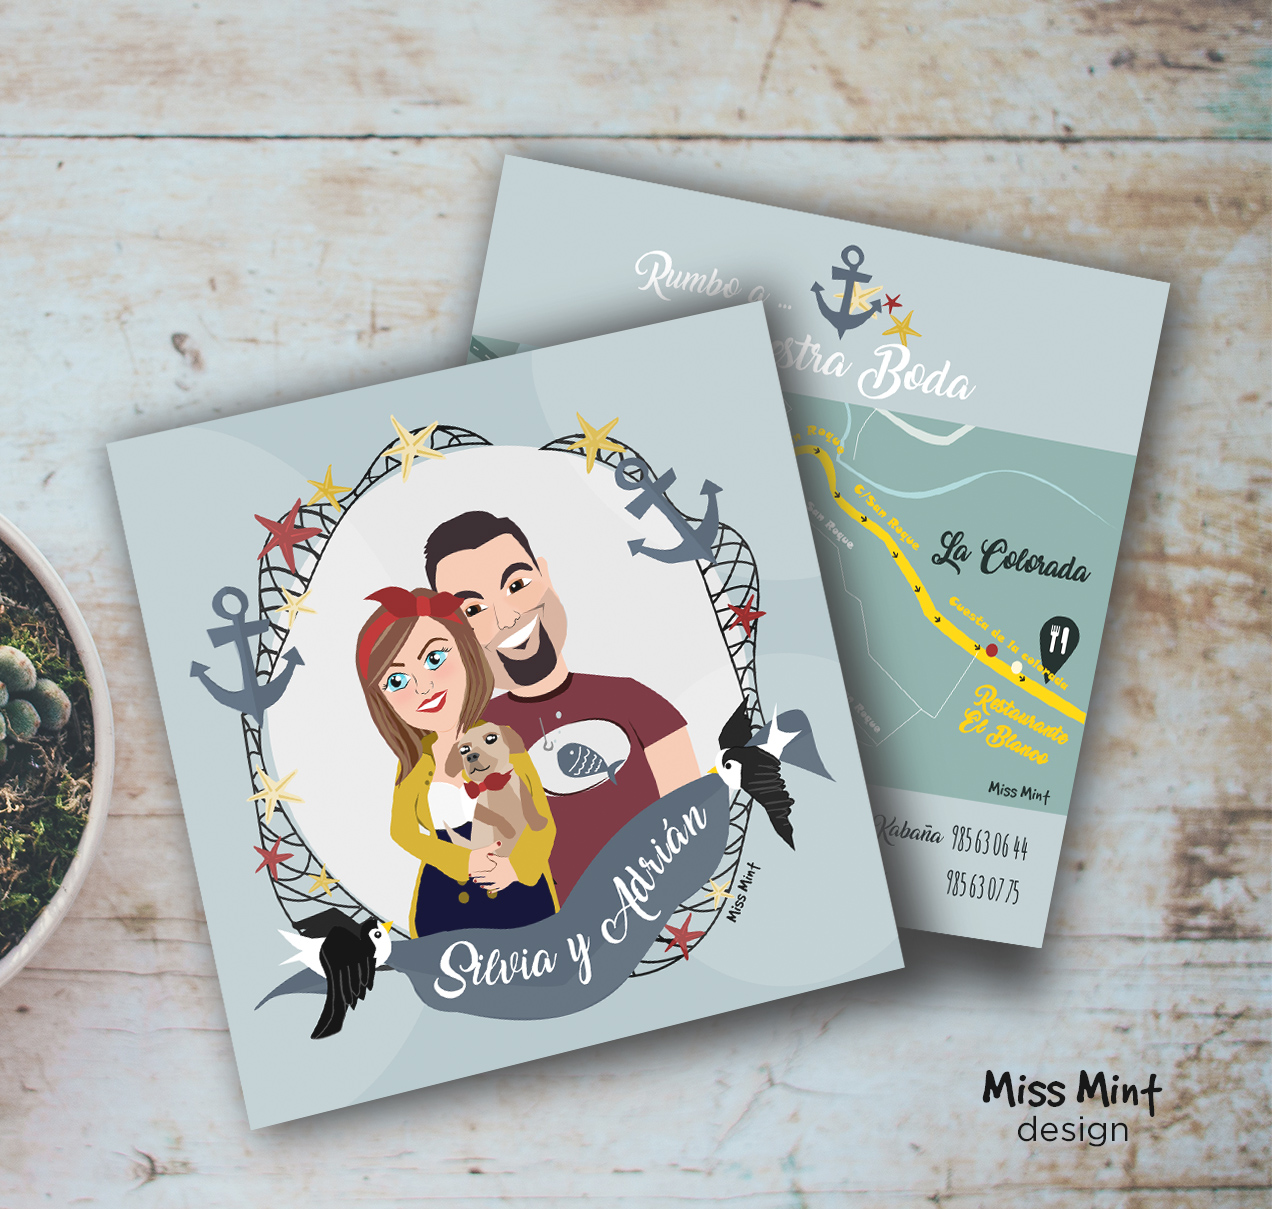 invitaciones de boda personalizadas y exclusivas miss mint